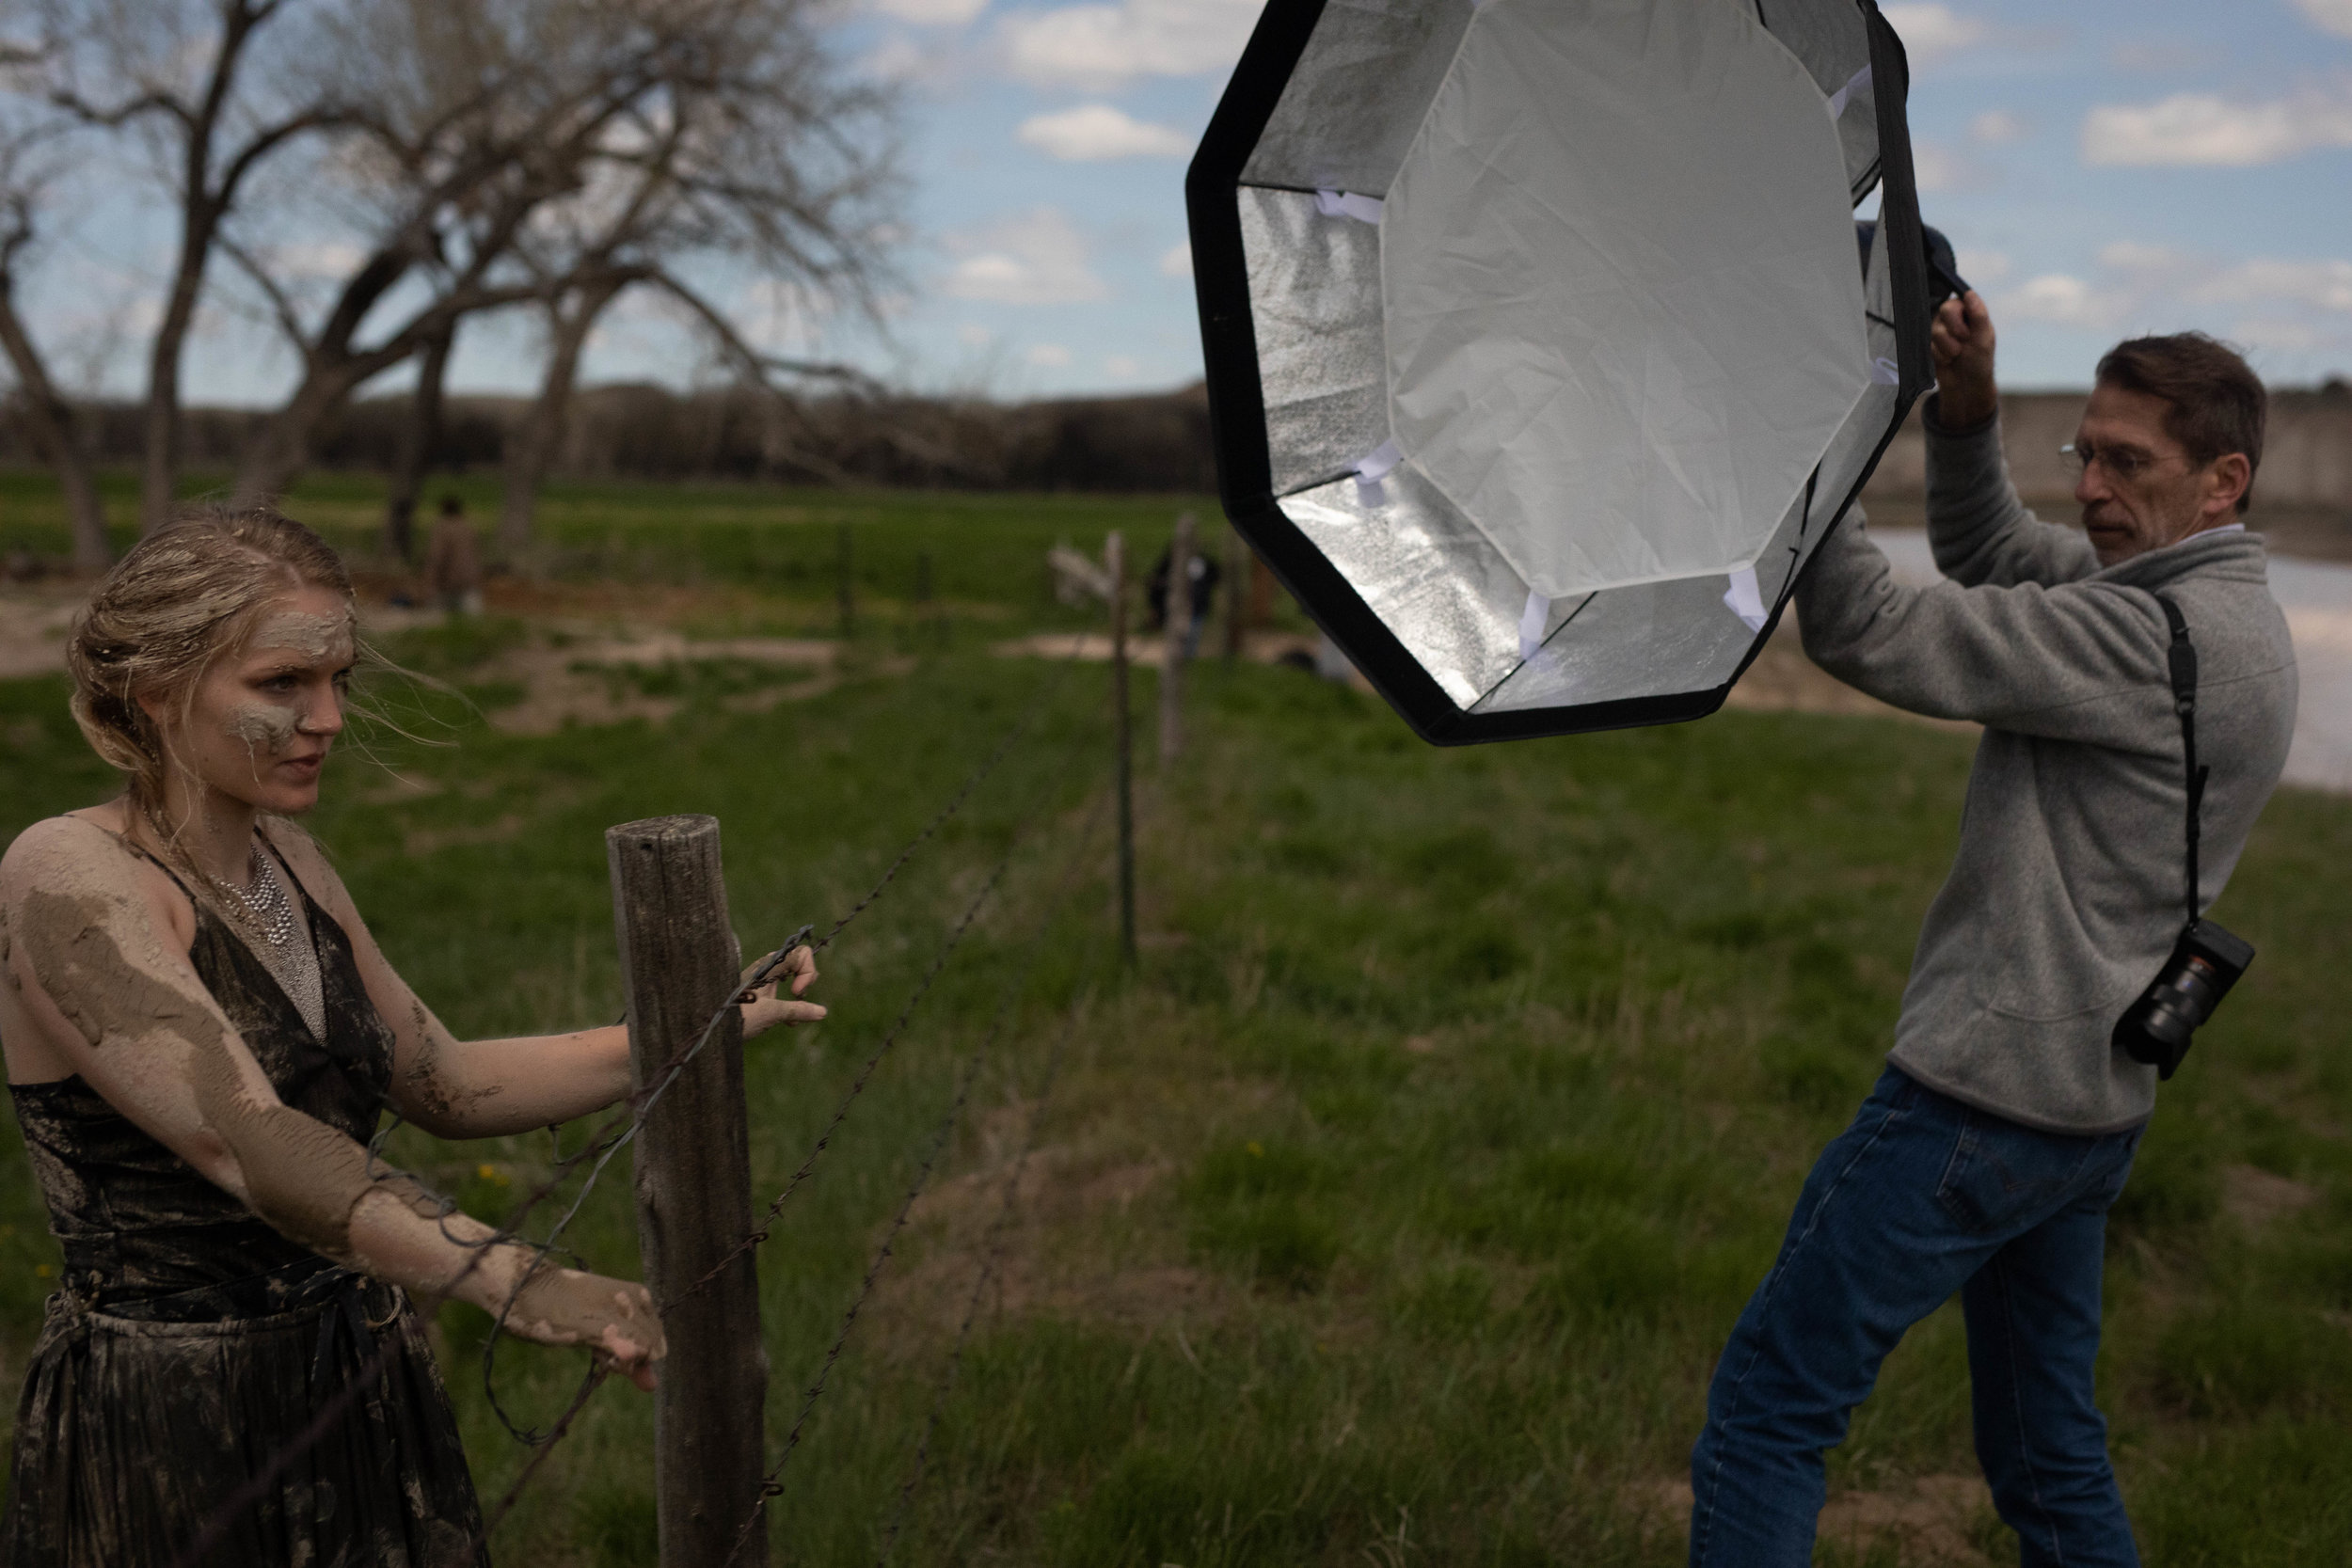 Behind the Scenes from the Parker Pfister workshop in the Badlands of South Dakota